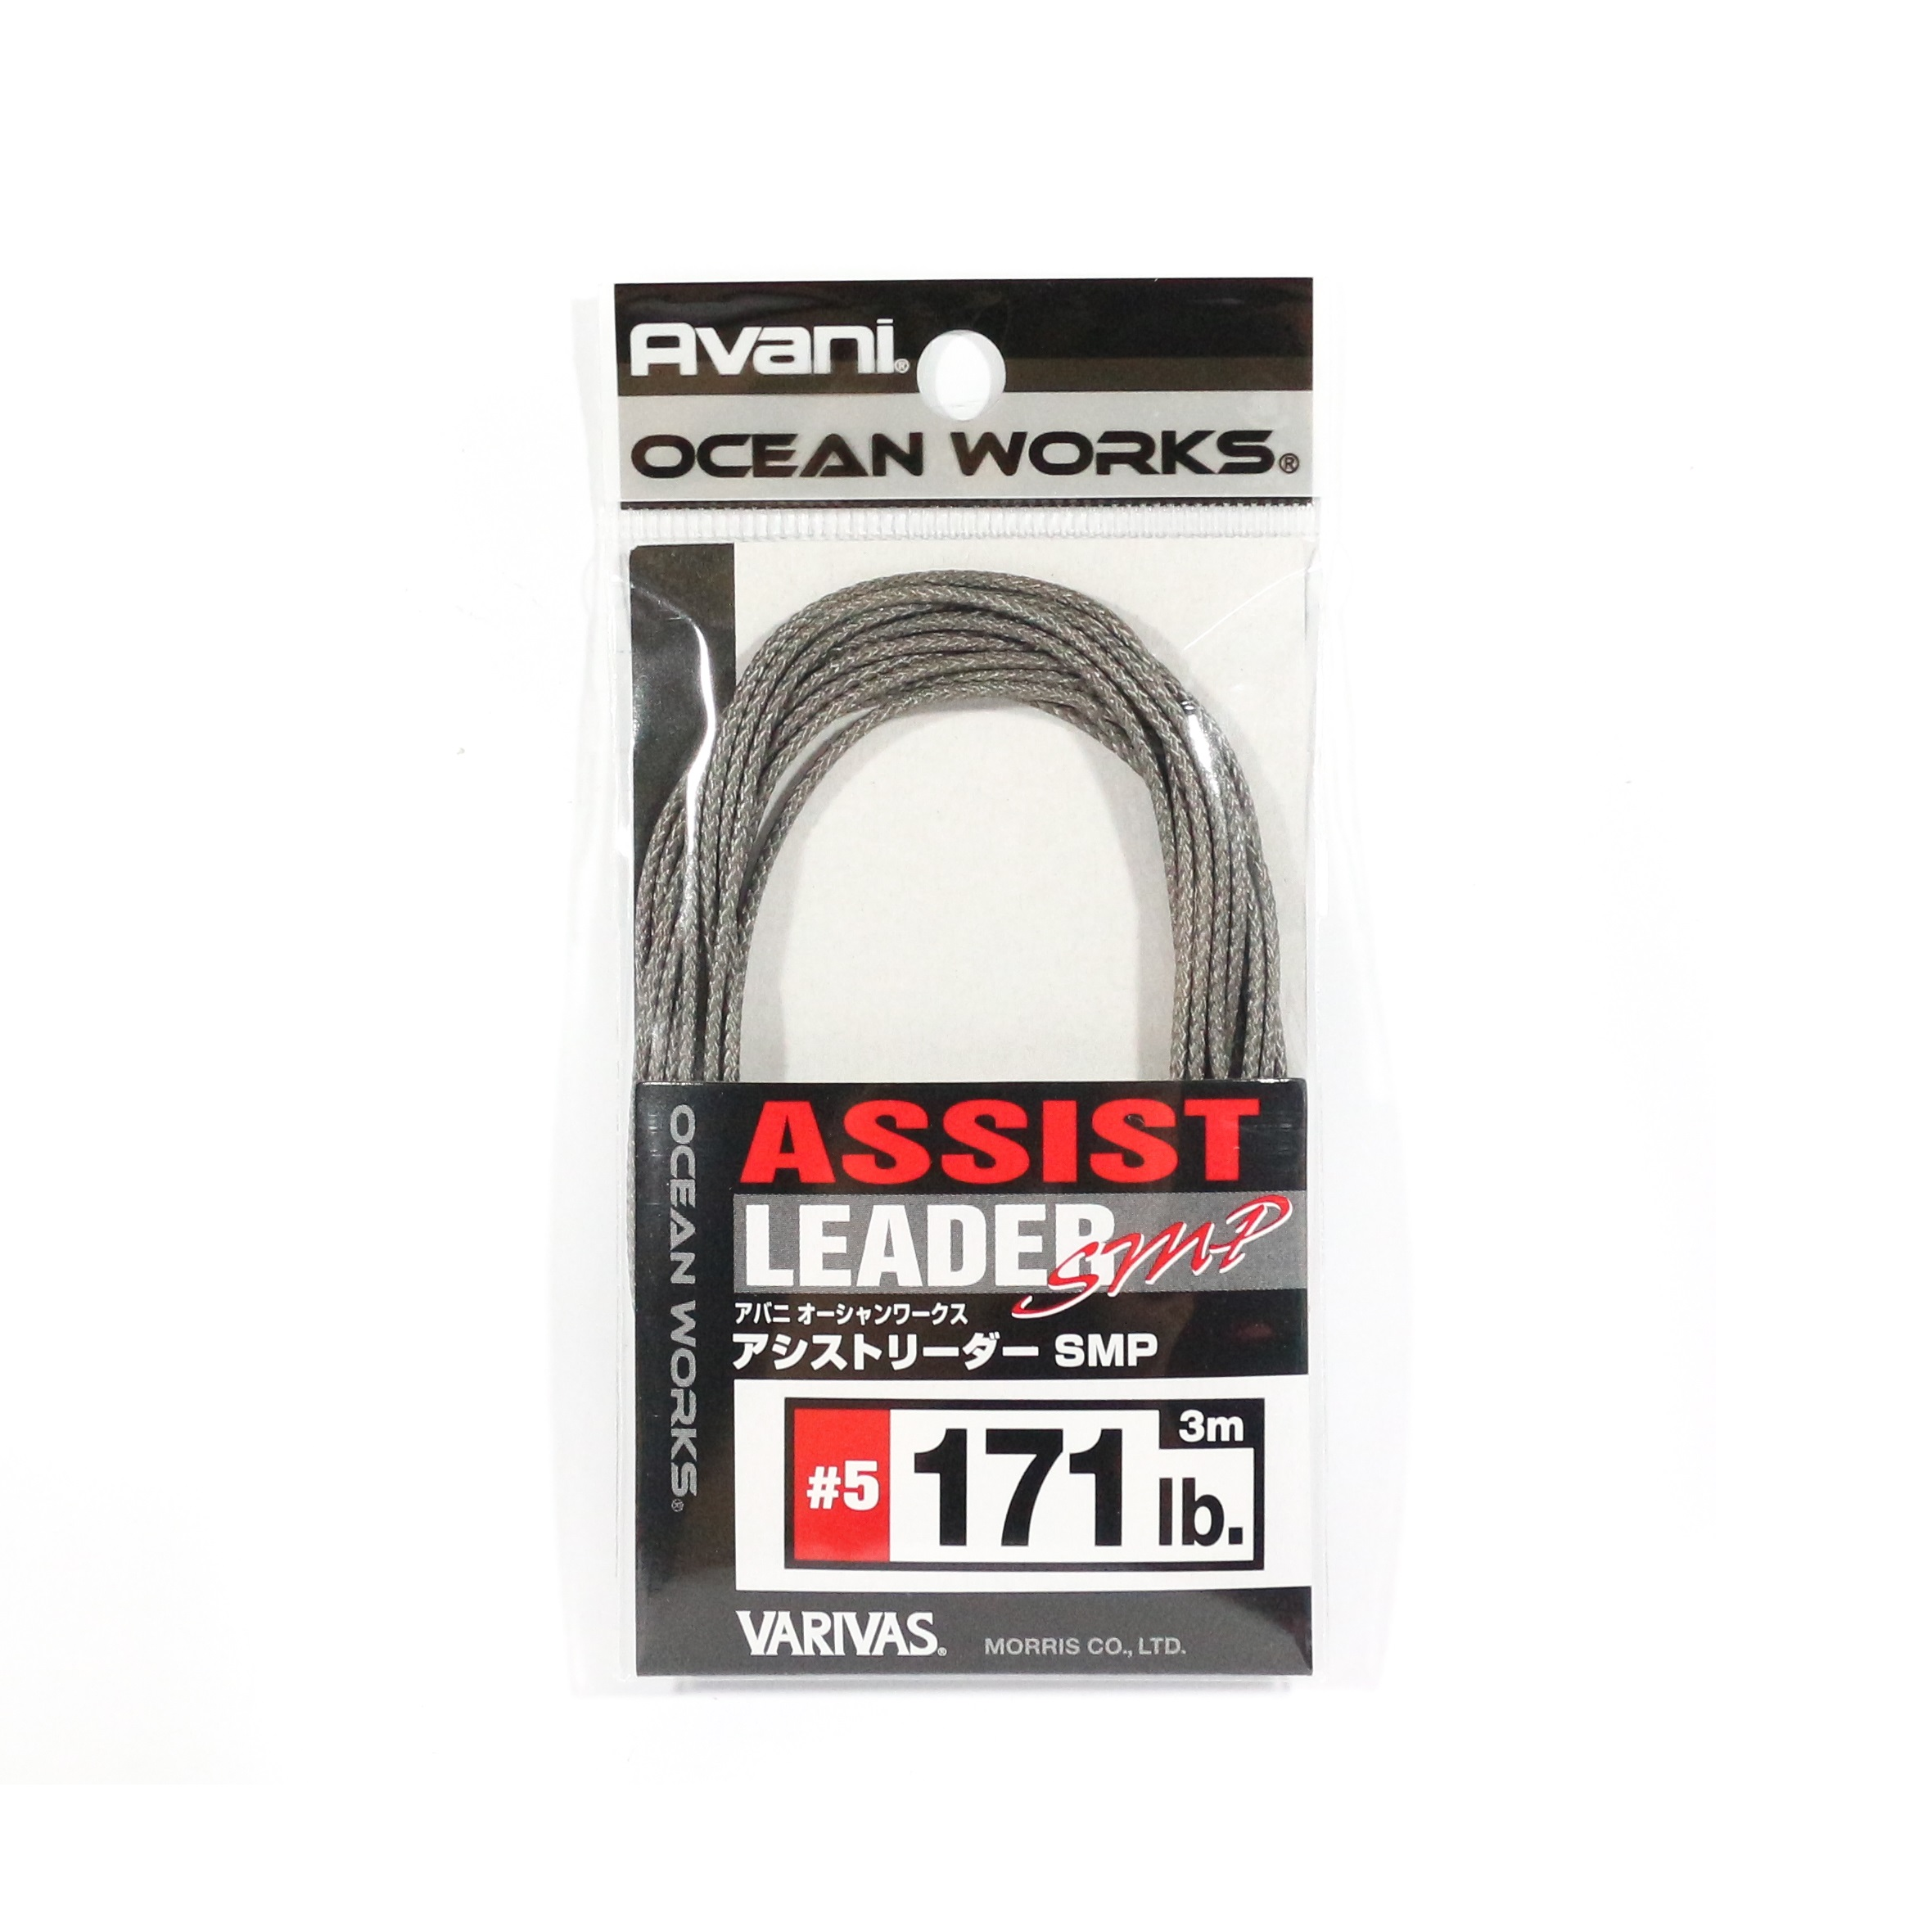 Varivas AH-5 Ocean Works Assist Leader SMP 3 meters #5 171lb (3981)